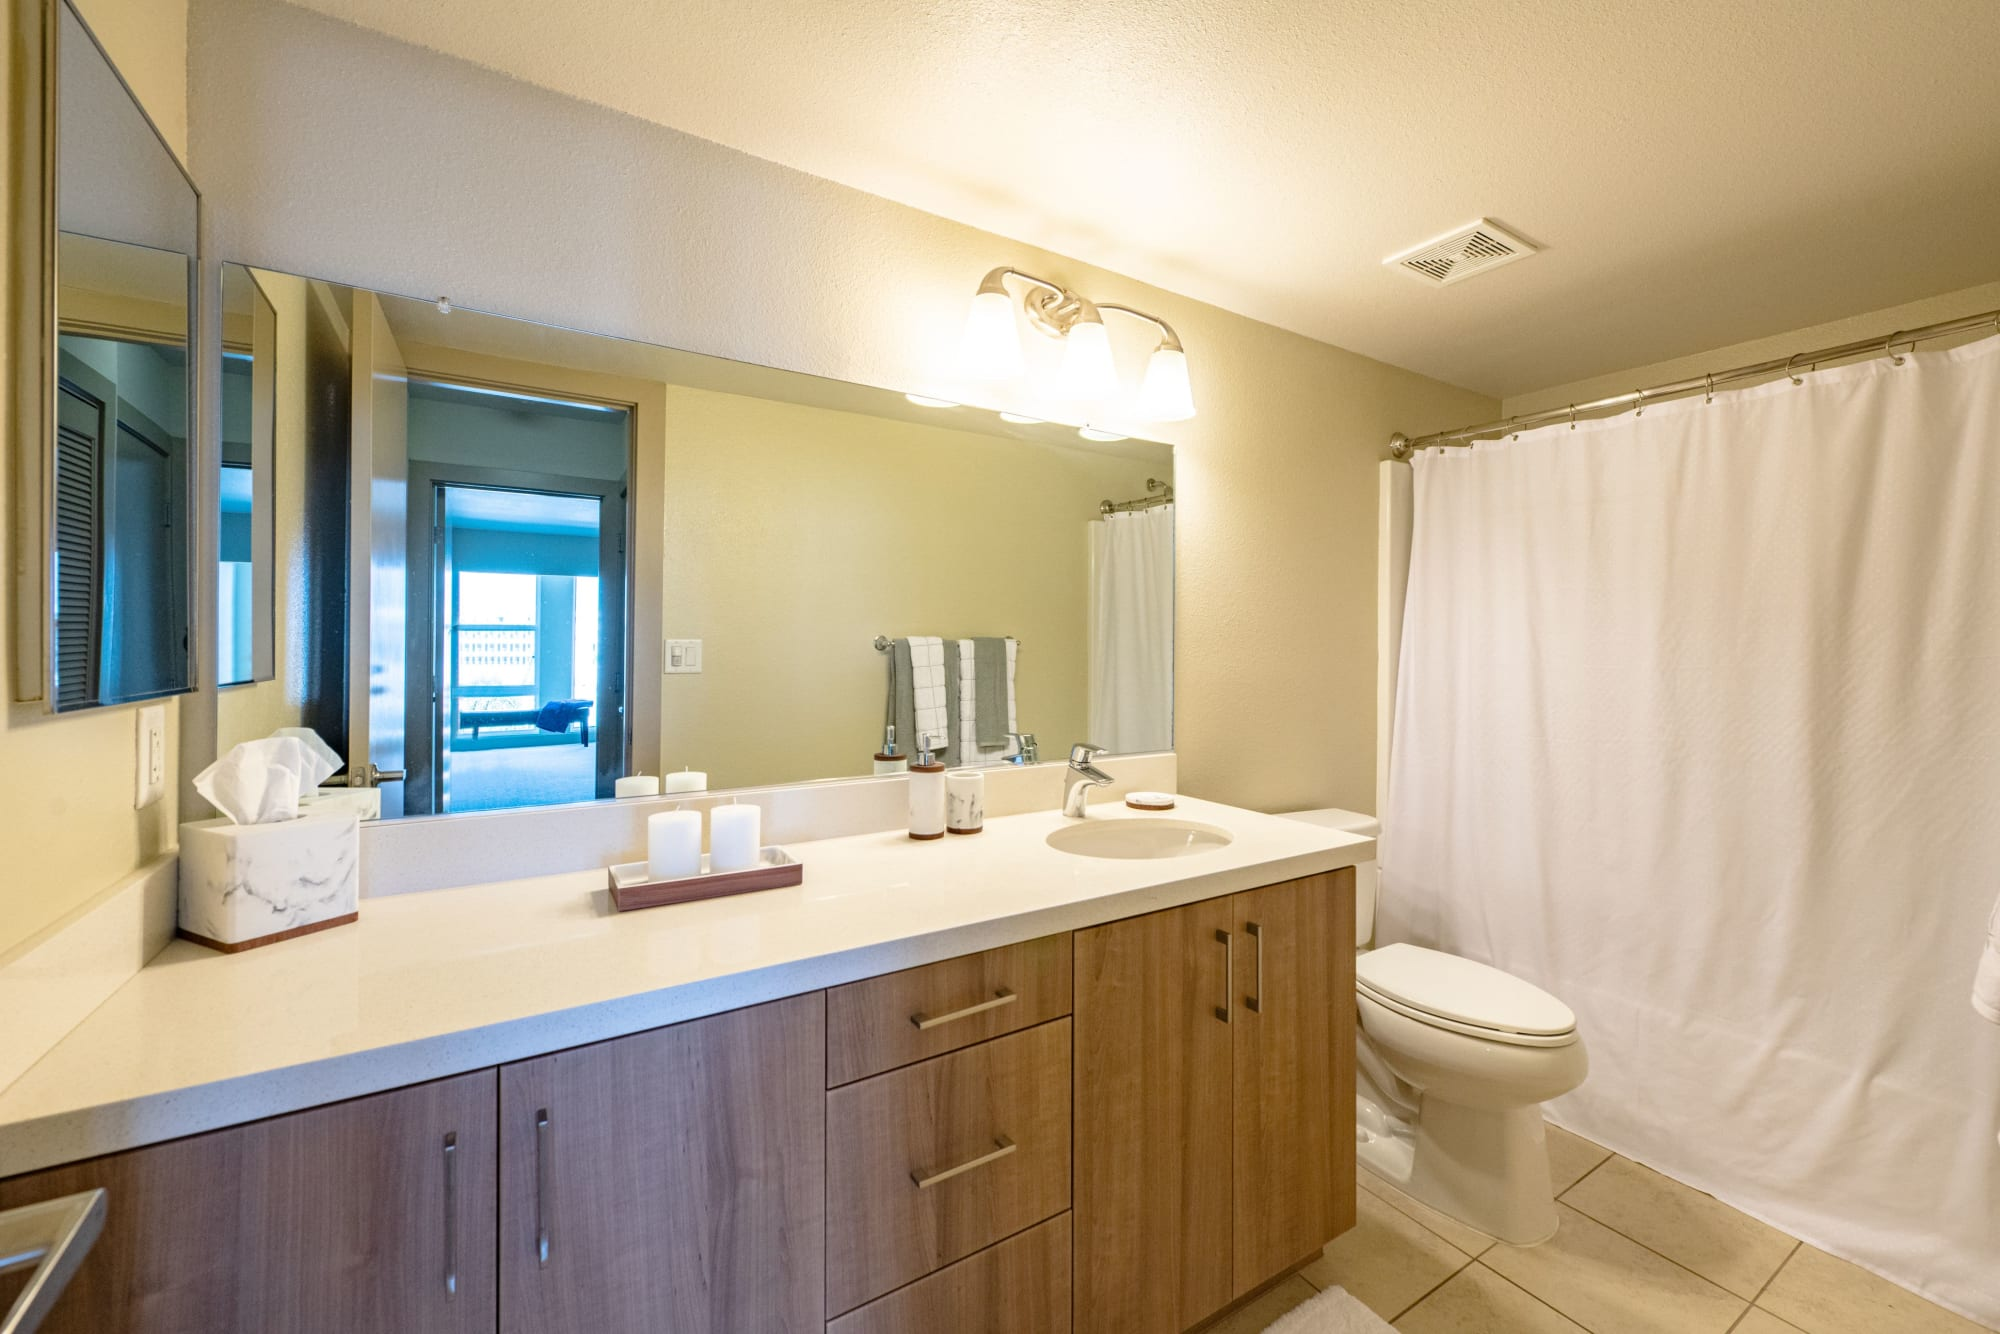 Bathrooms with ample counter space at Harborside Marina Bay Apartments in Marina del Rey, California